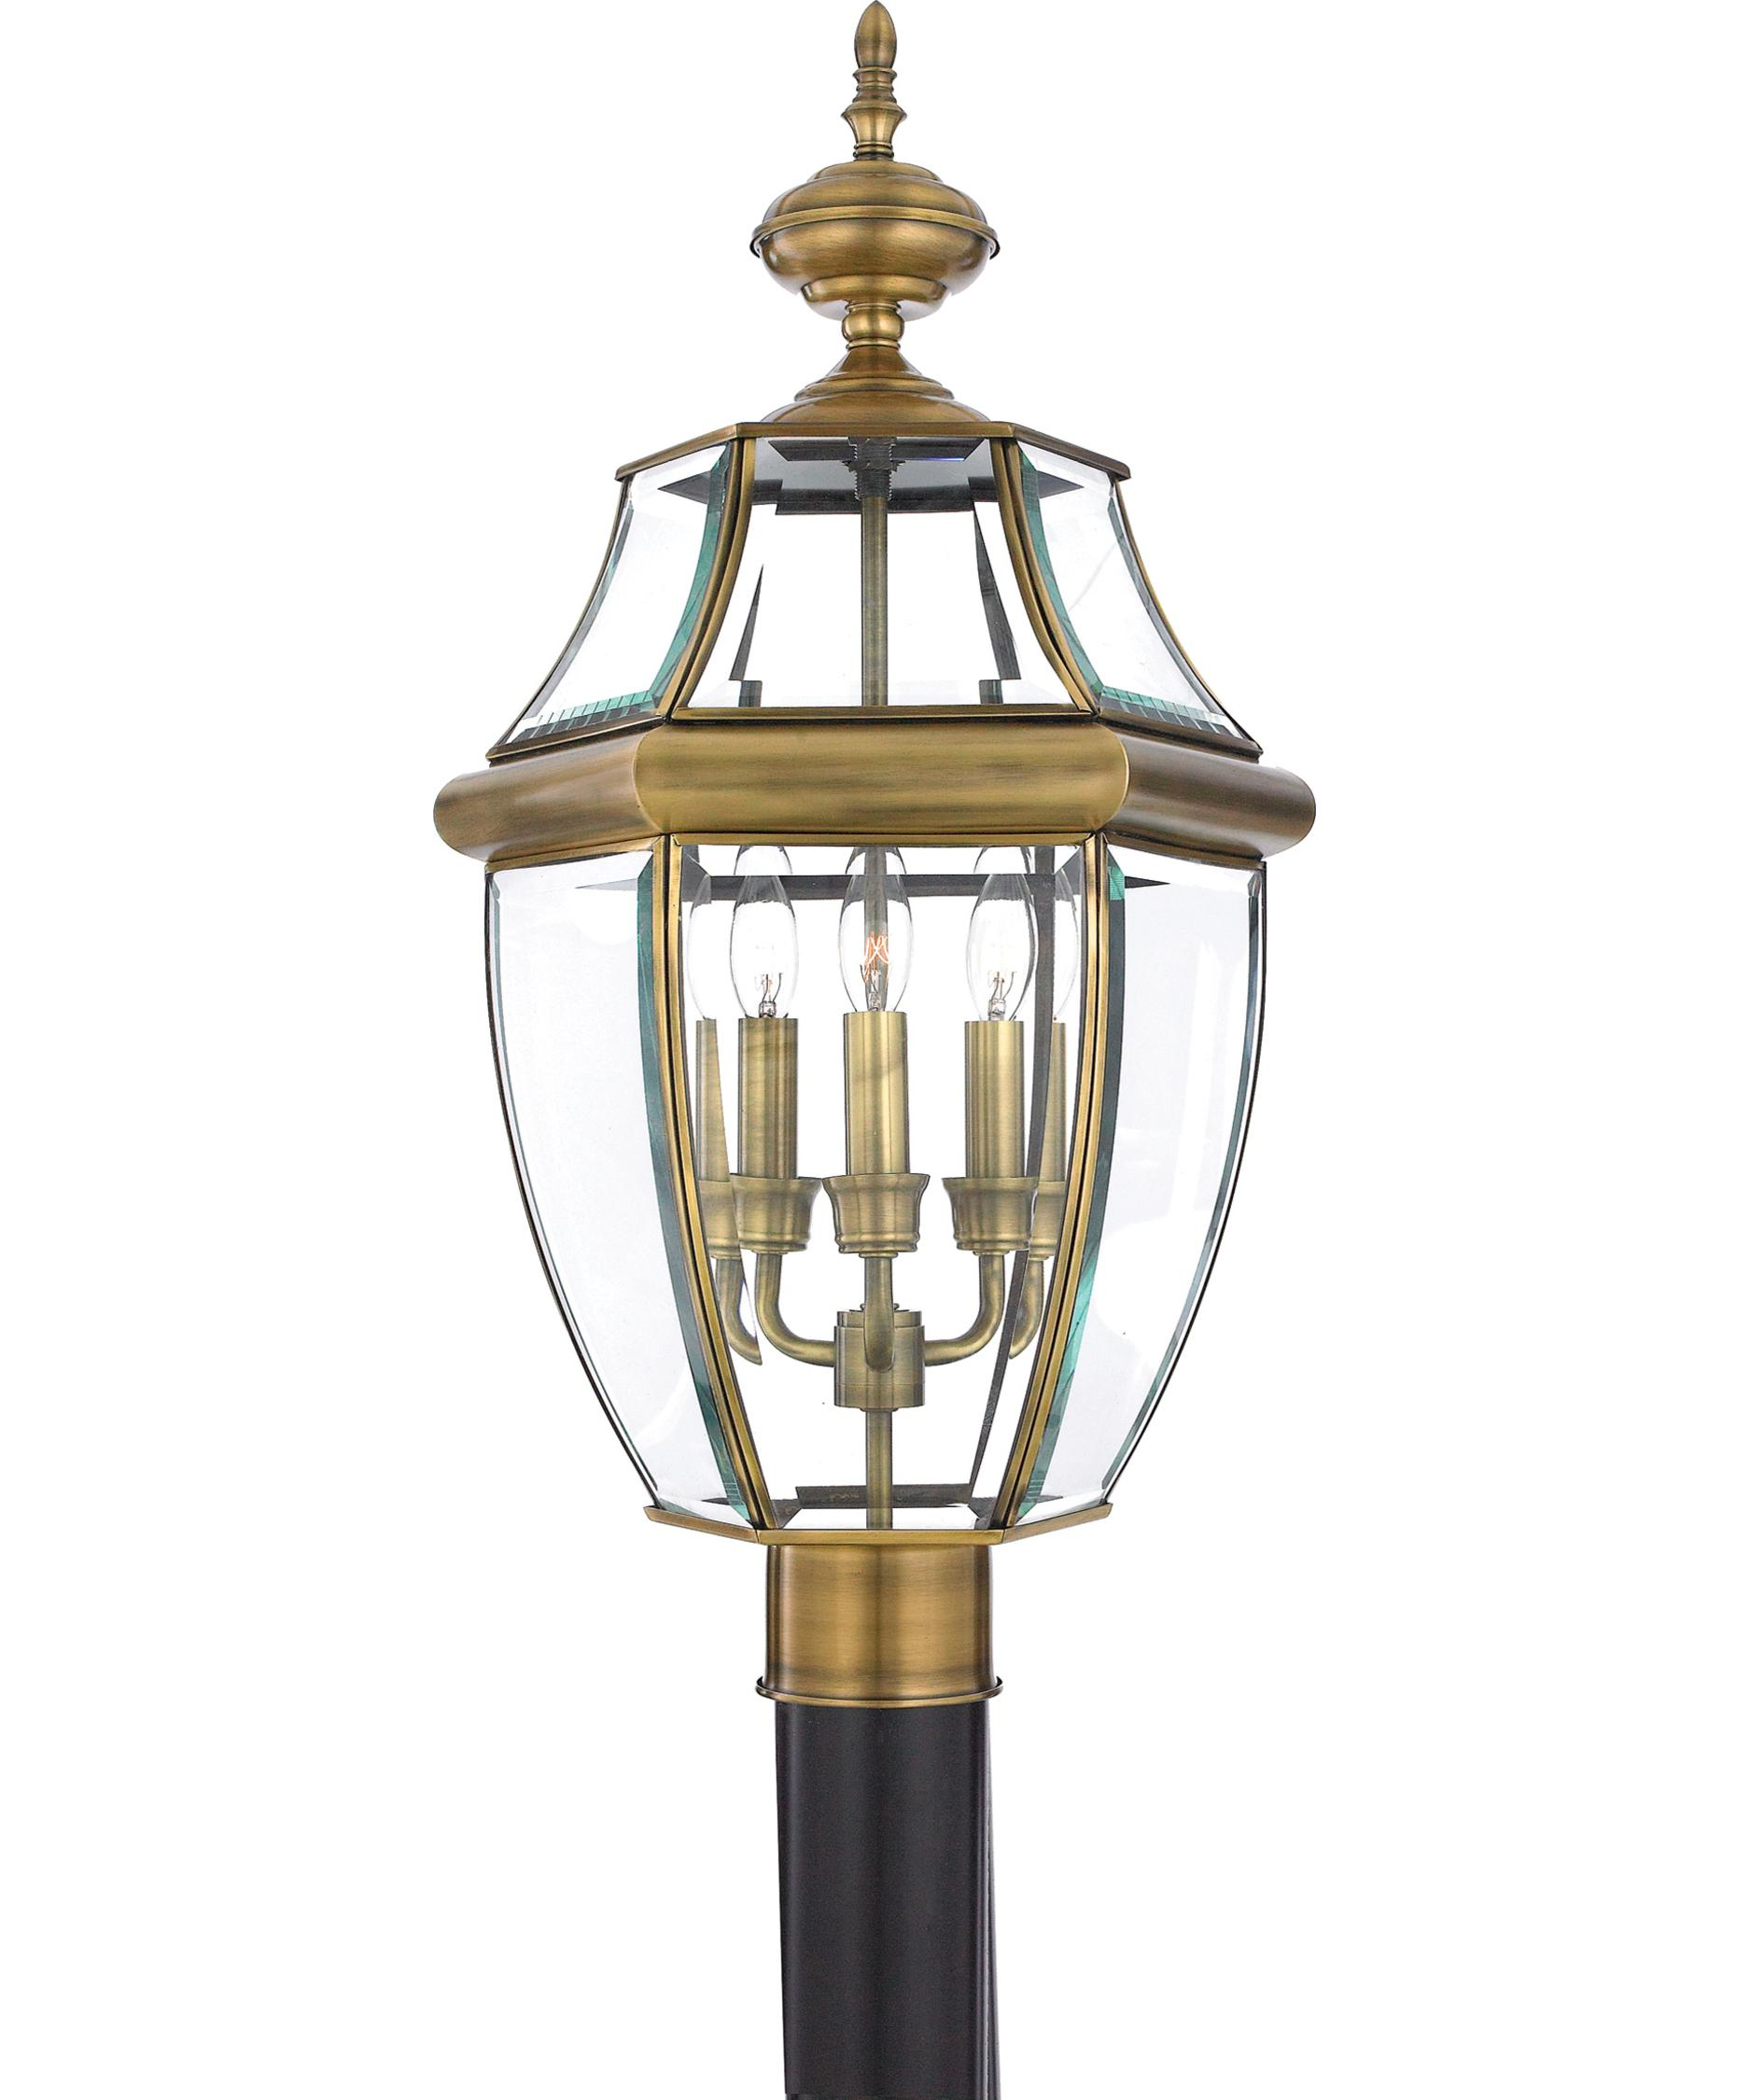 Quoizel Newbury 3 Light Outdoor Post Lamp Capitol Lighting 1